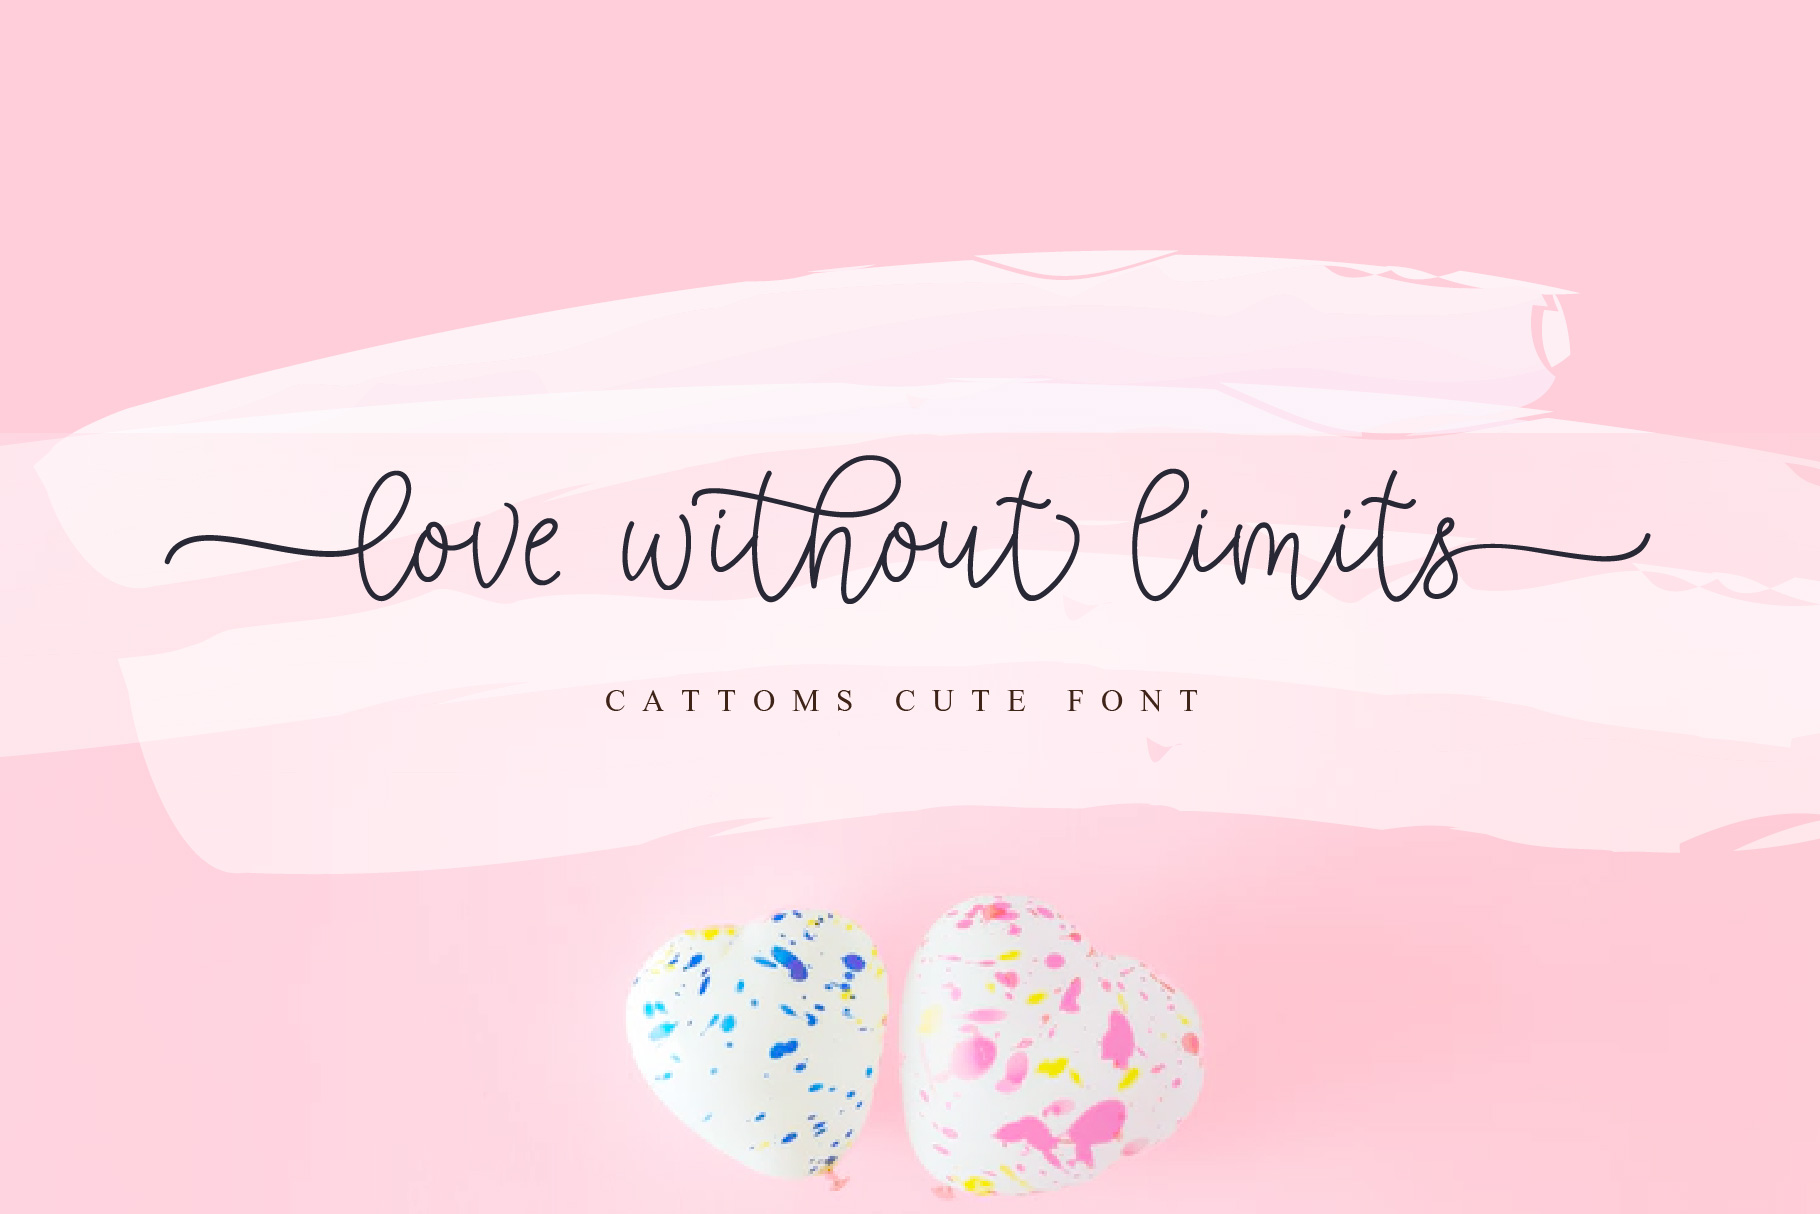 Cattoms Cute Script Fonts example image 2